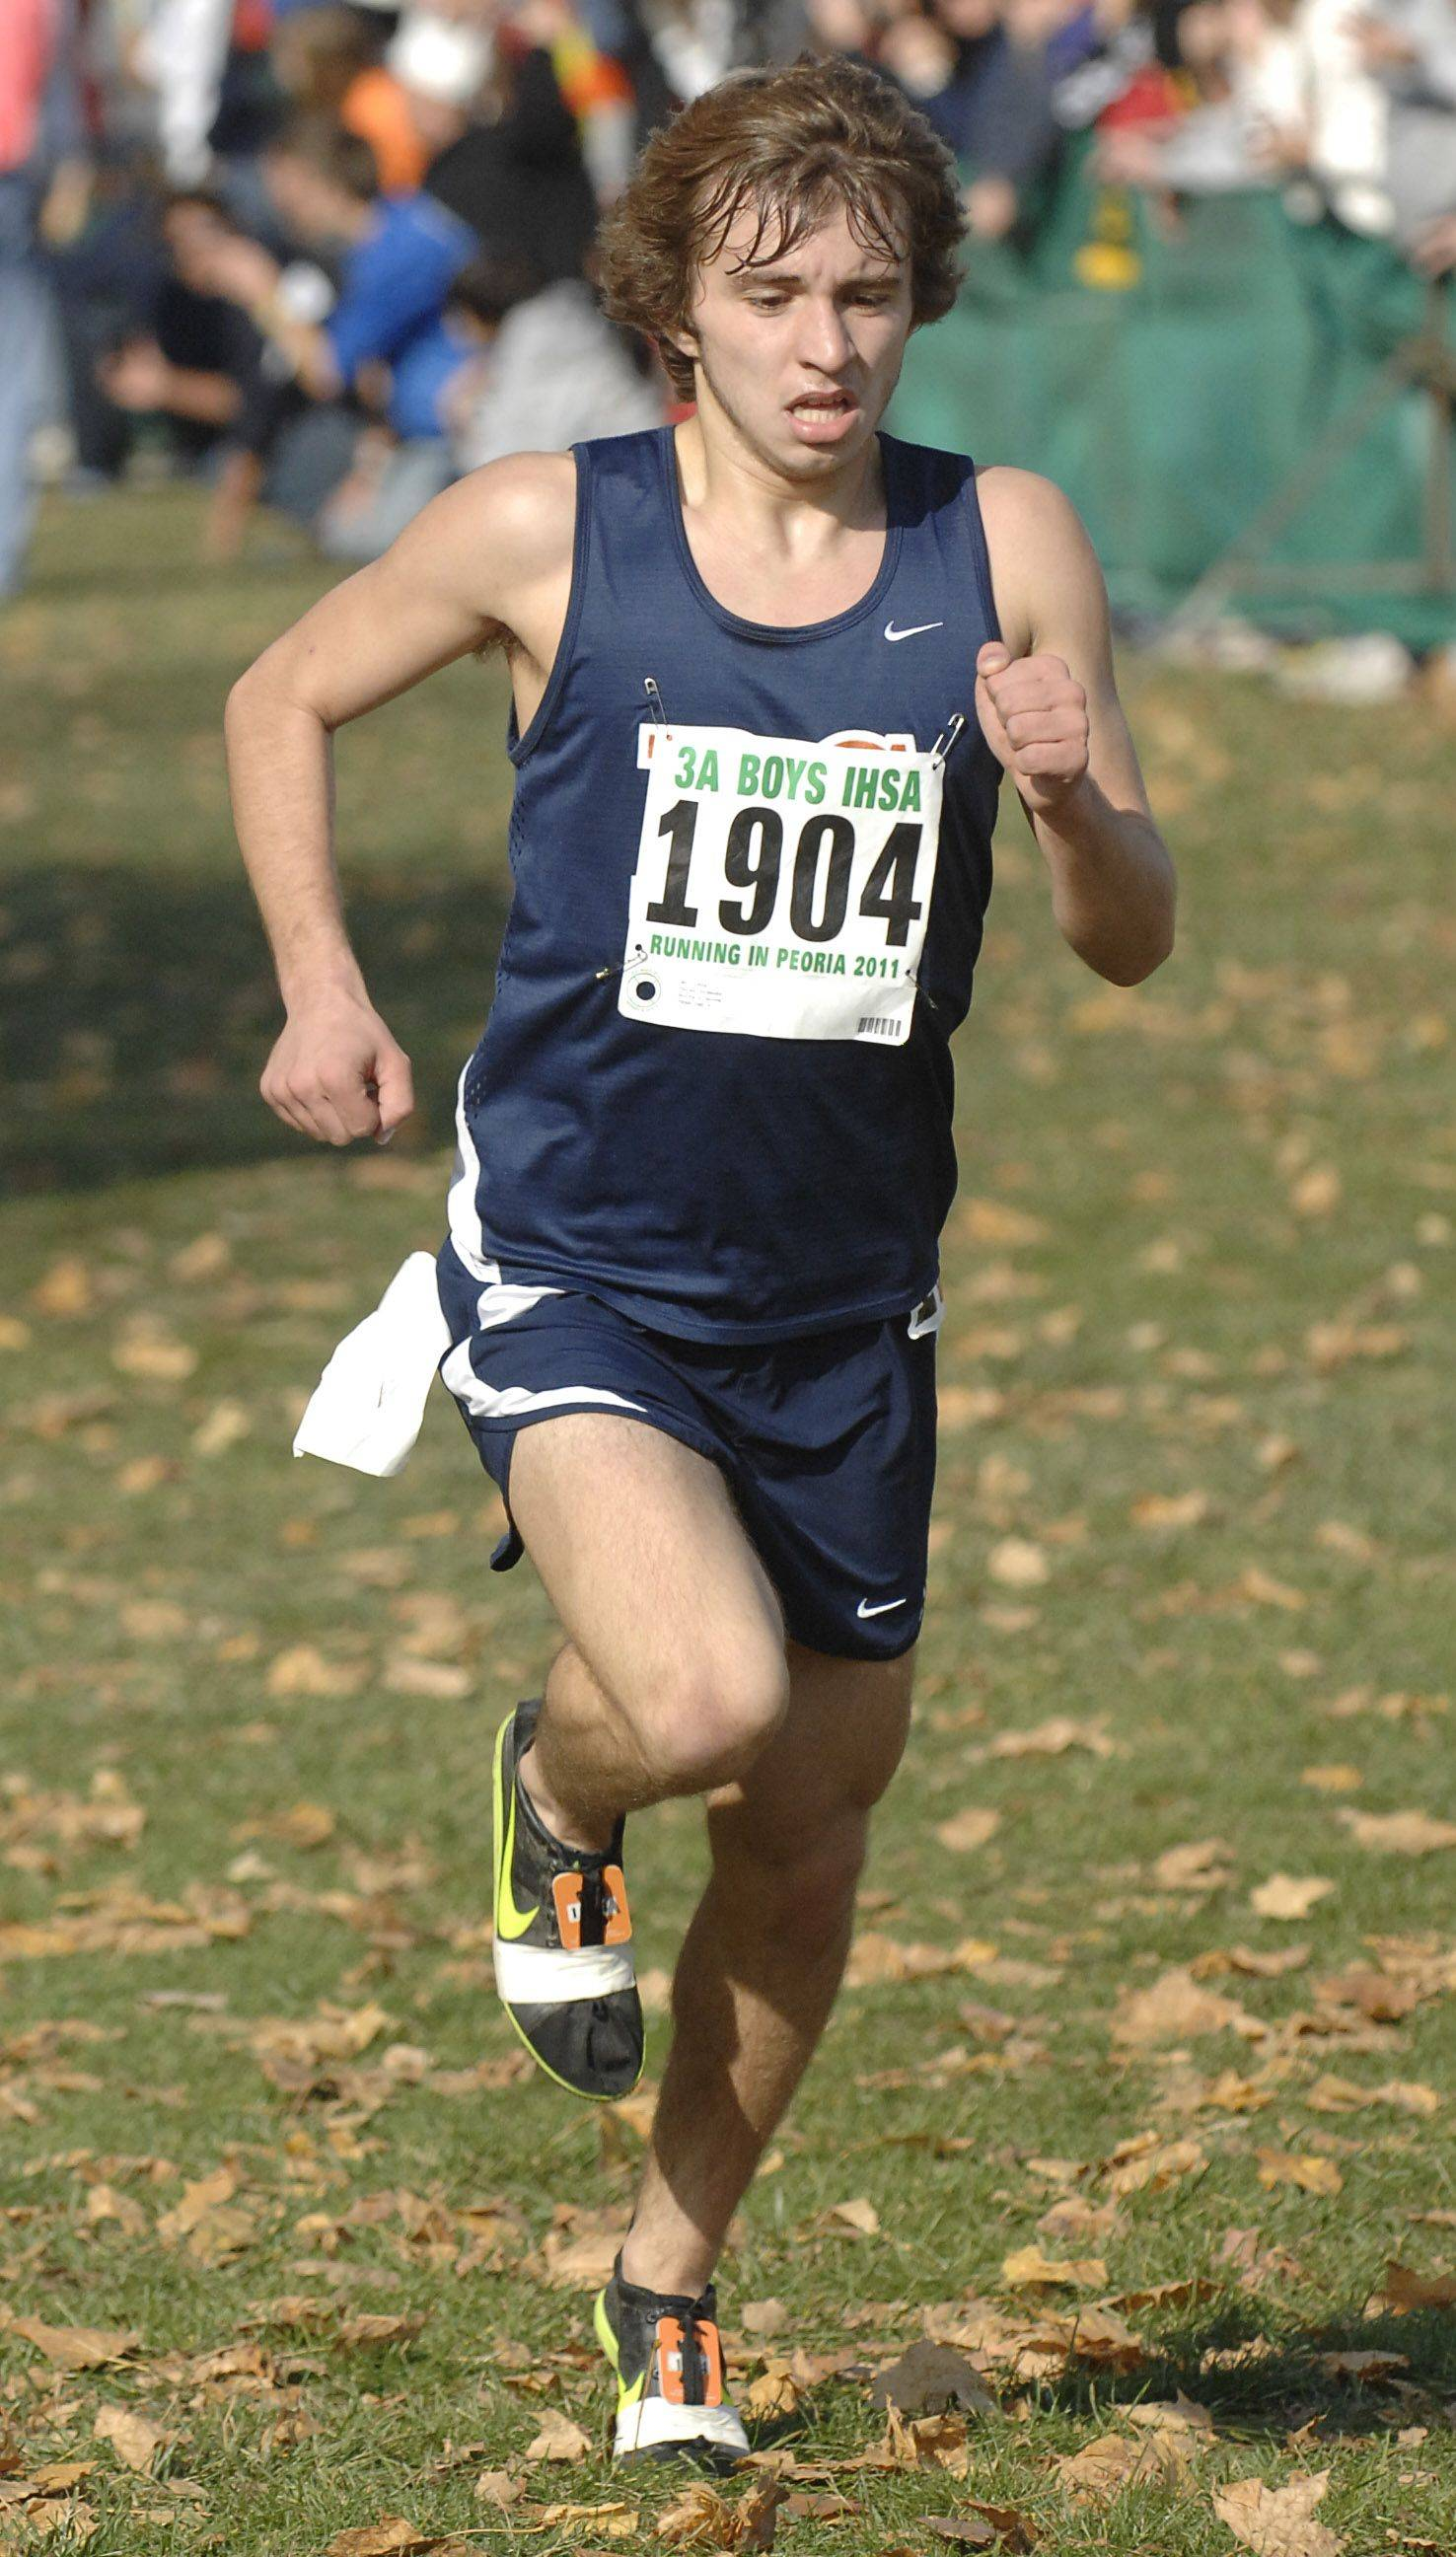 Buffalo Grove's Taras Didenko comes in 26th place with a time of 15:02 in the 3A state cross country final.